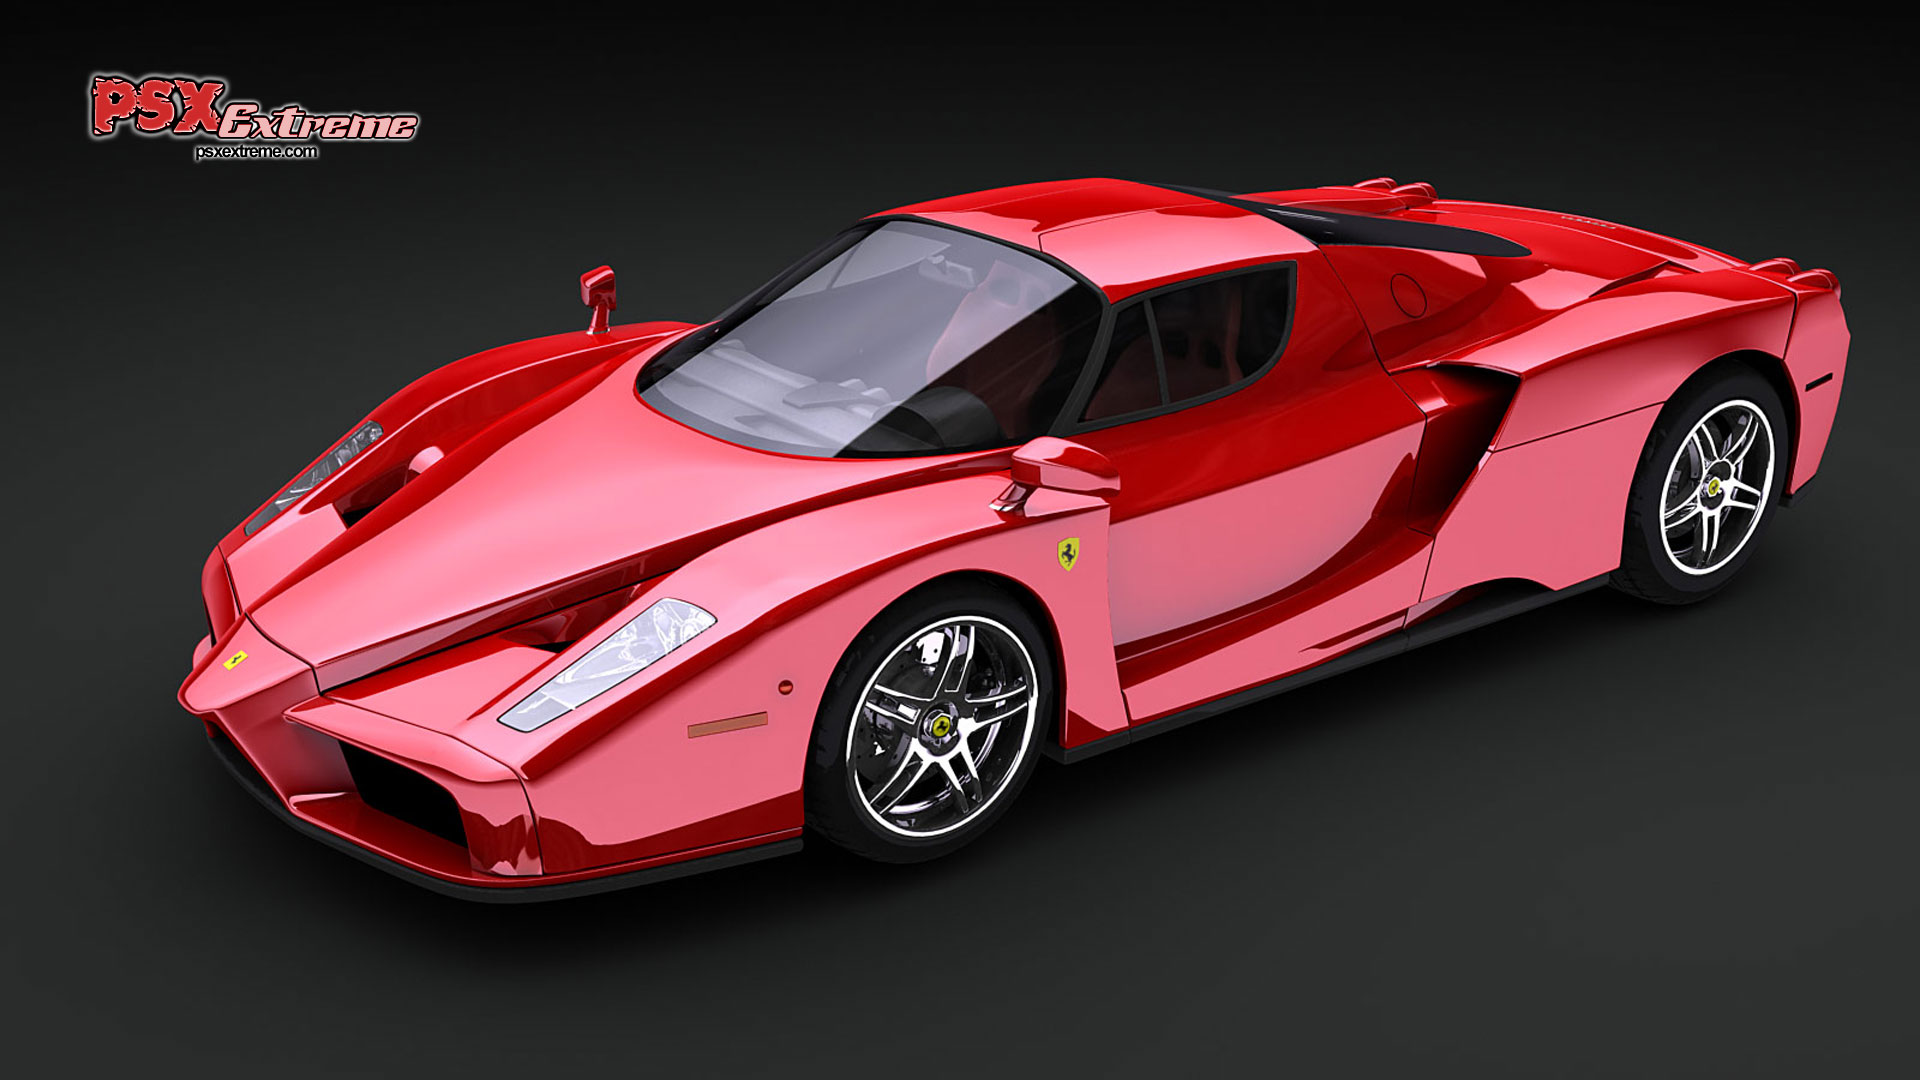 This is a Ferrari Enzo wallpaper. This Ferrari Enzo background can be used